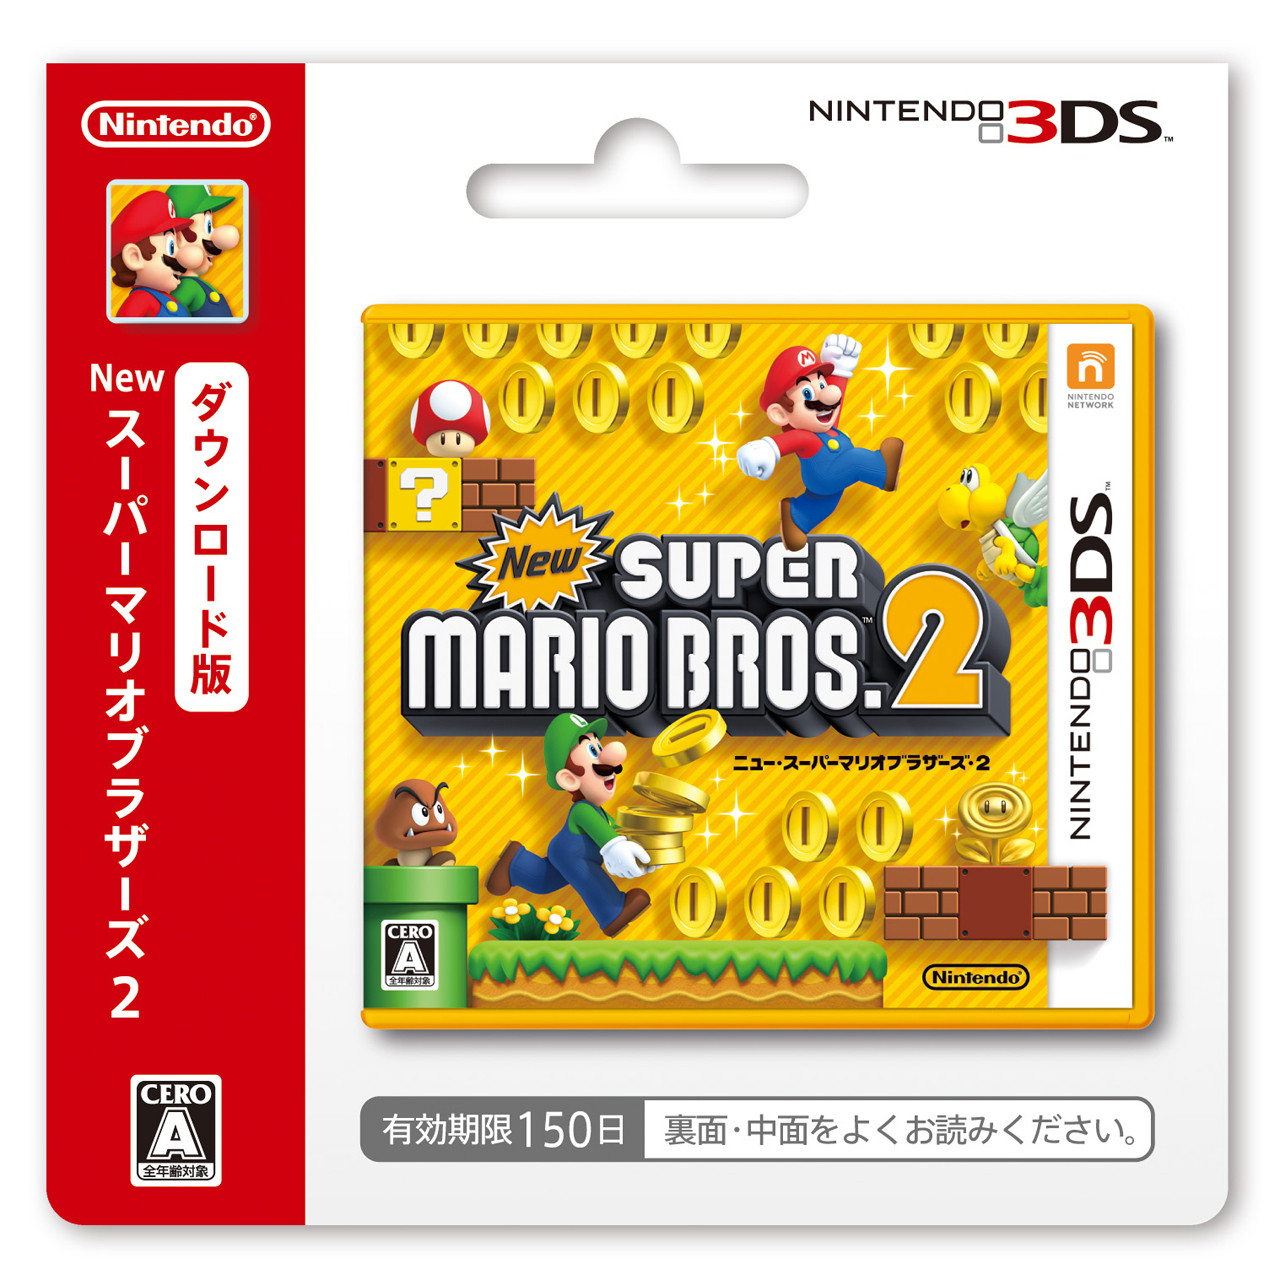 nsmb2_card